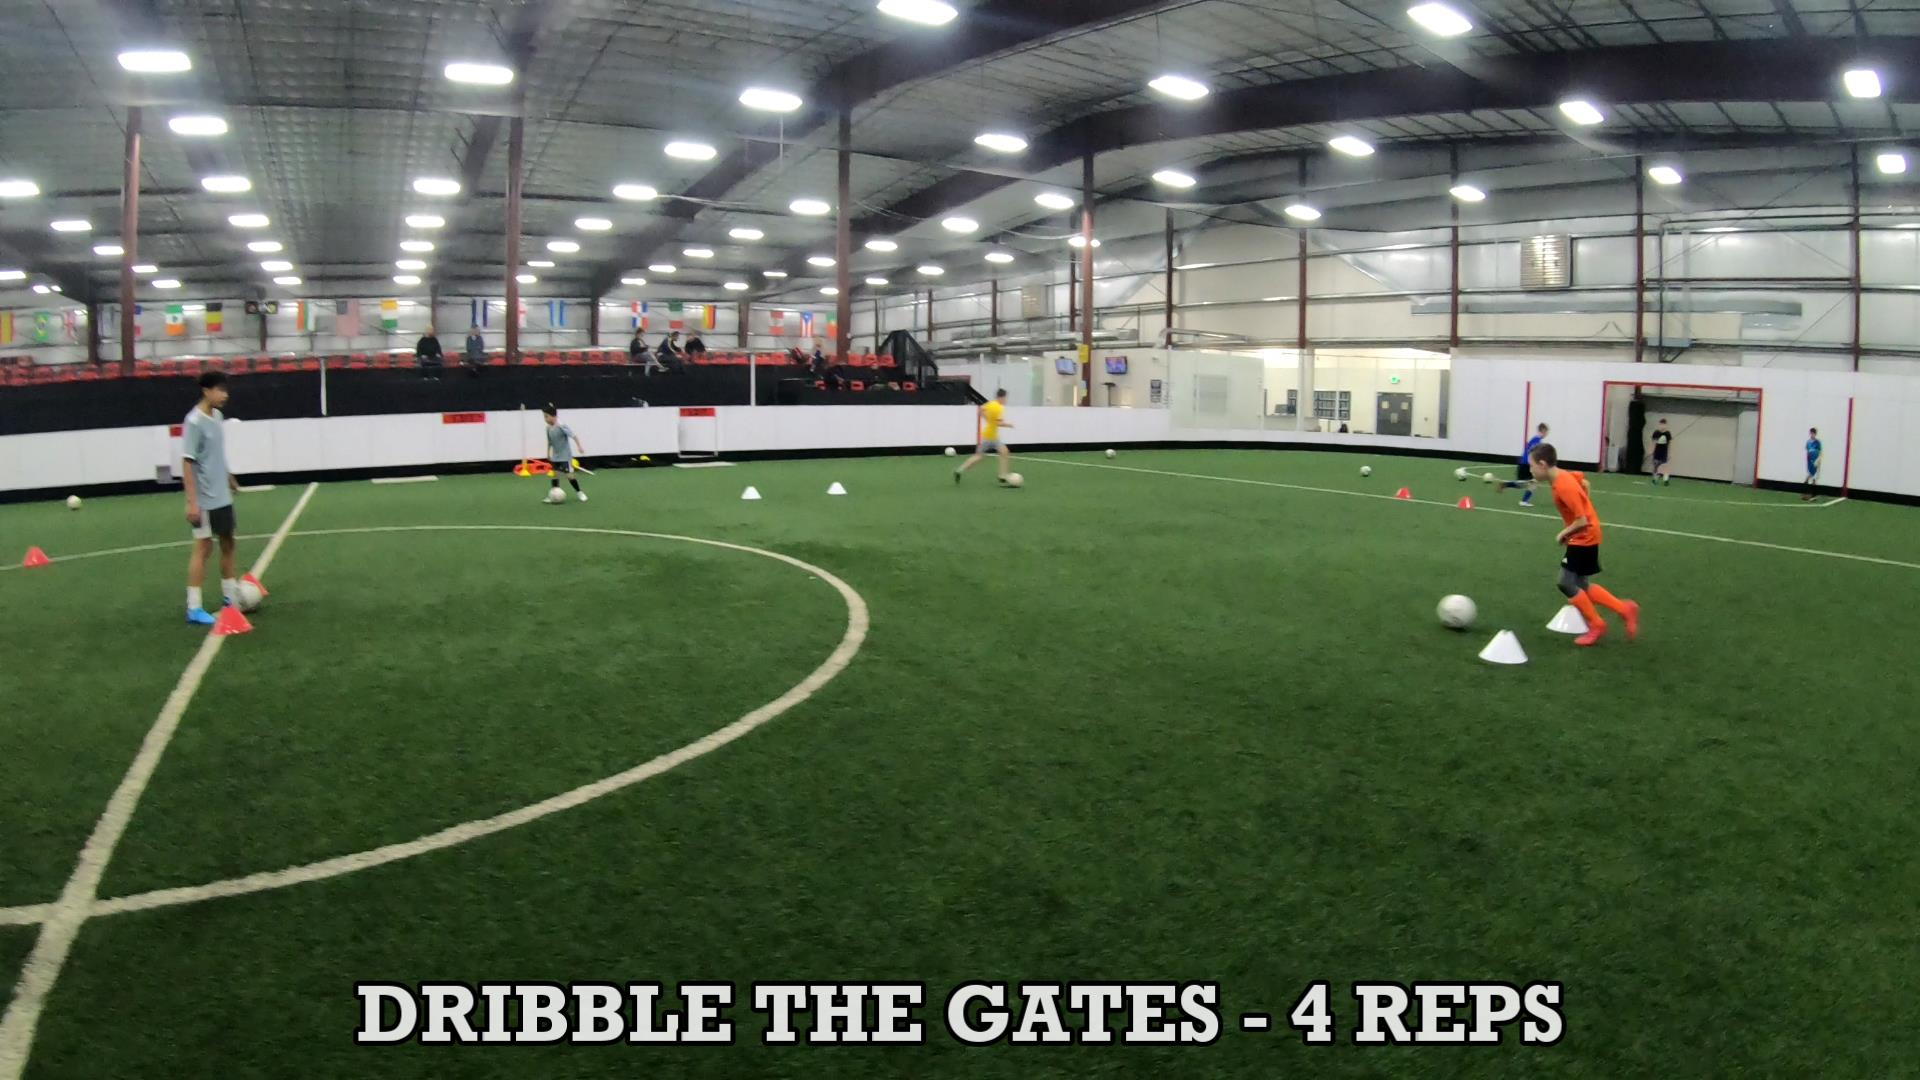 Soccer Training Drills to Improve Ball Control 8